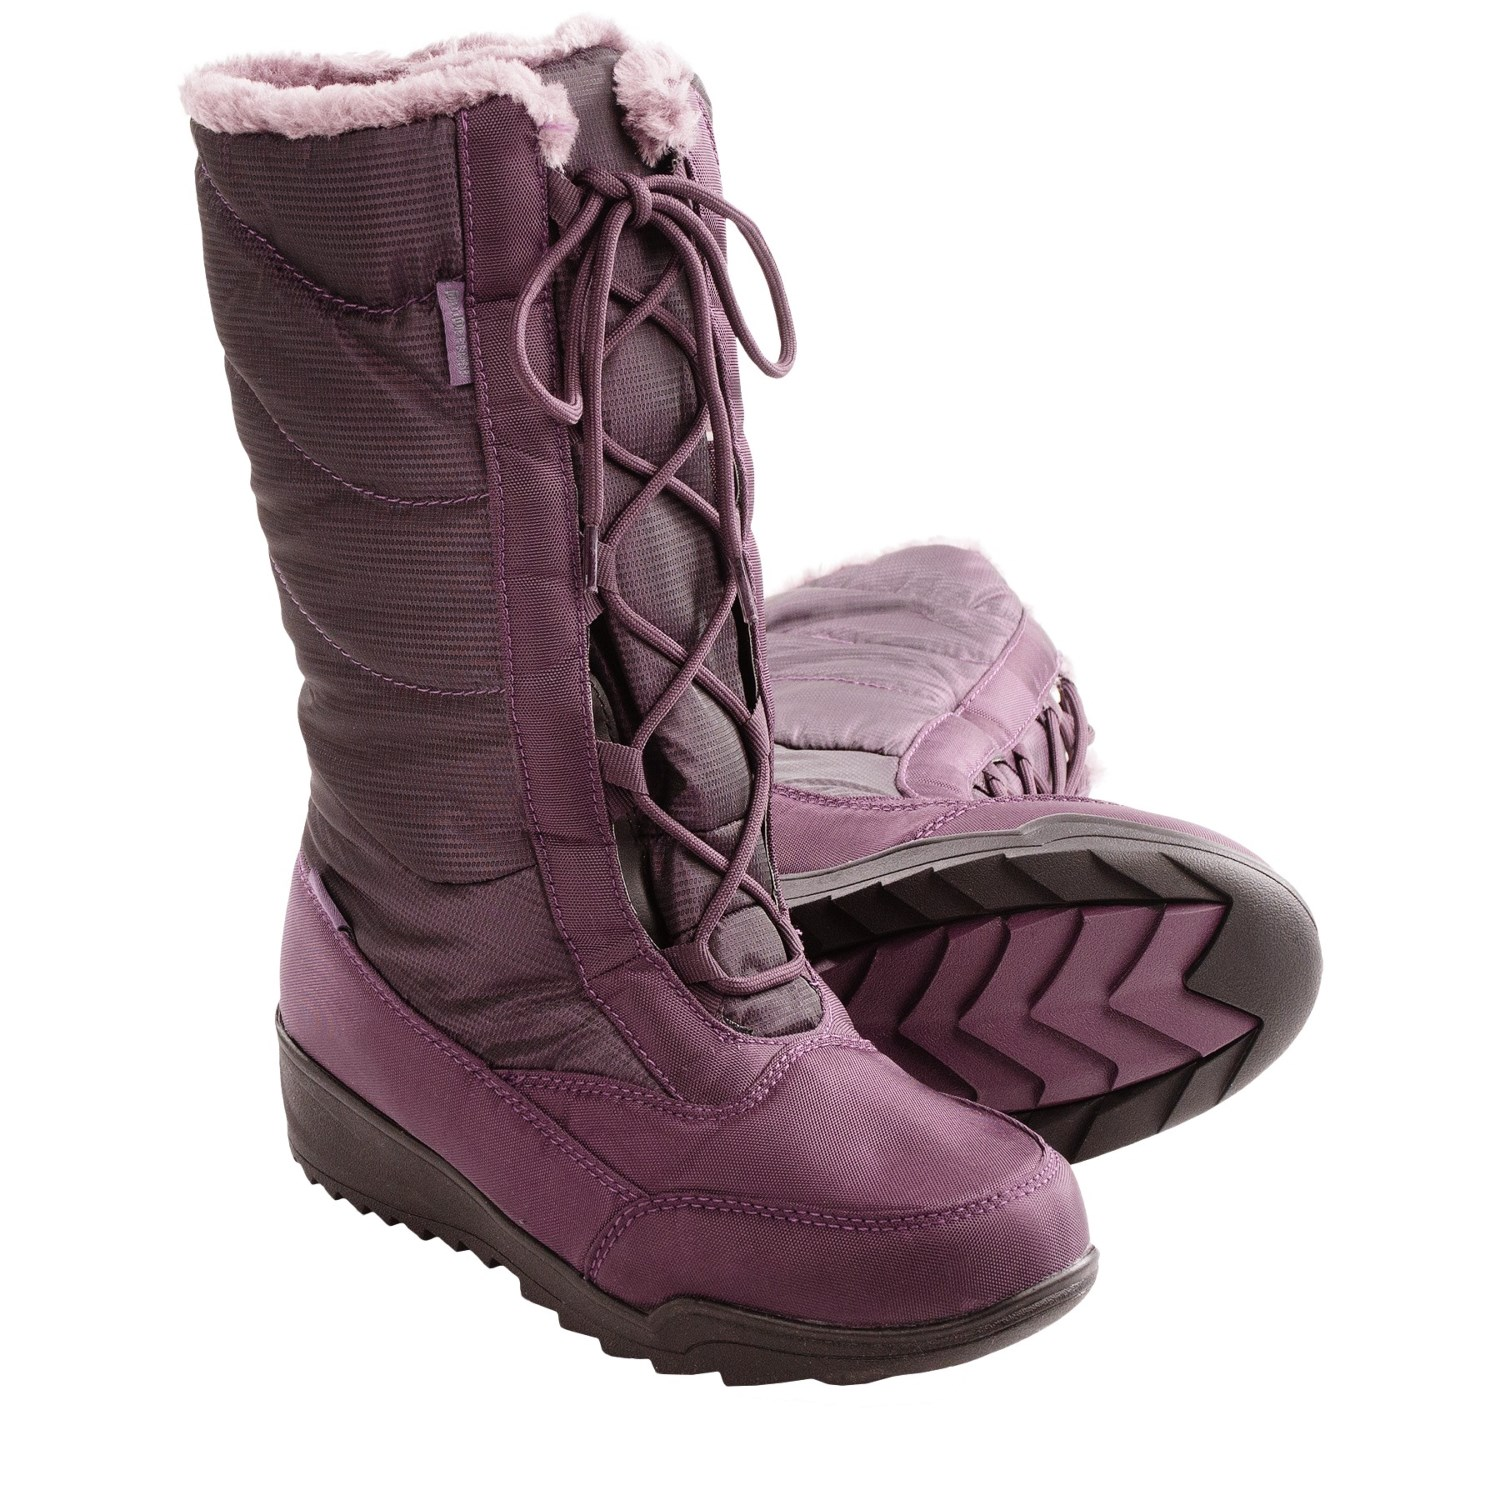 Perfect  Transit Boots  Waterproof Leather Tall For Women In Tobacco